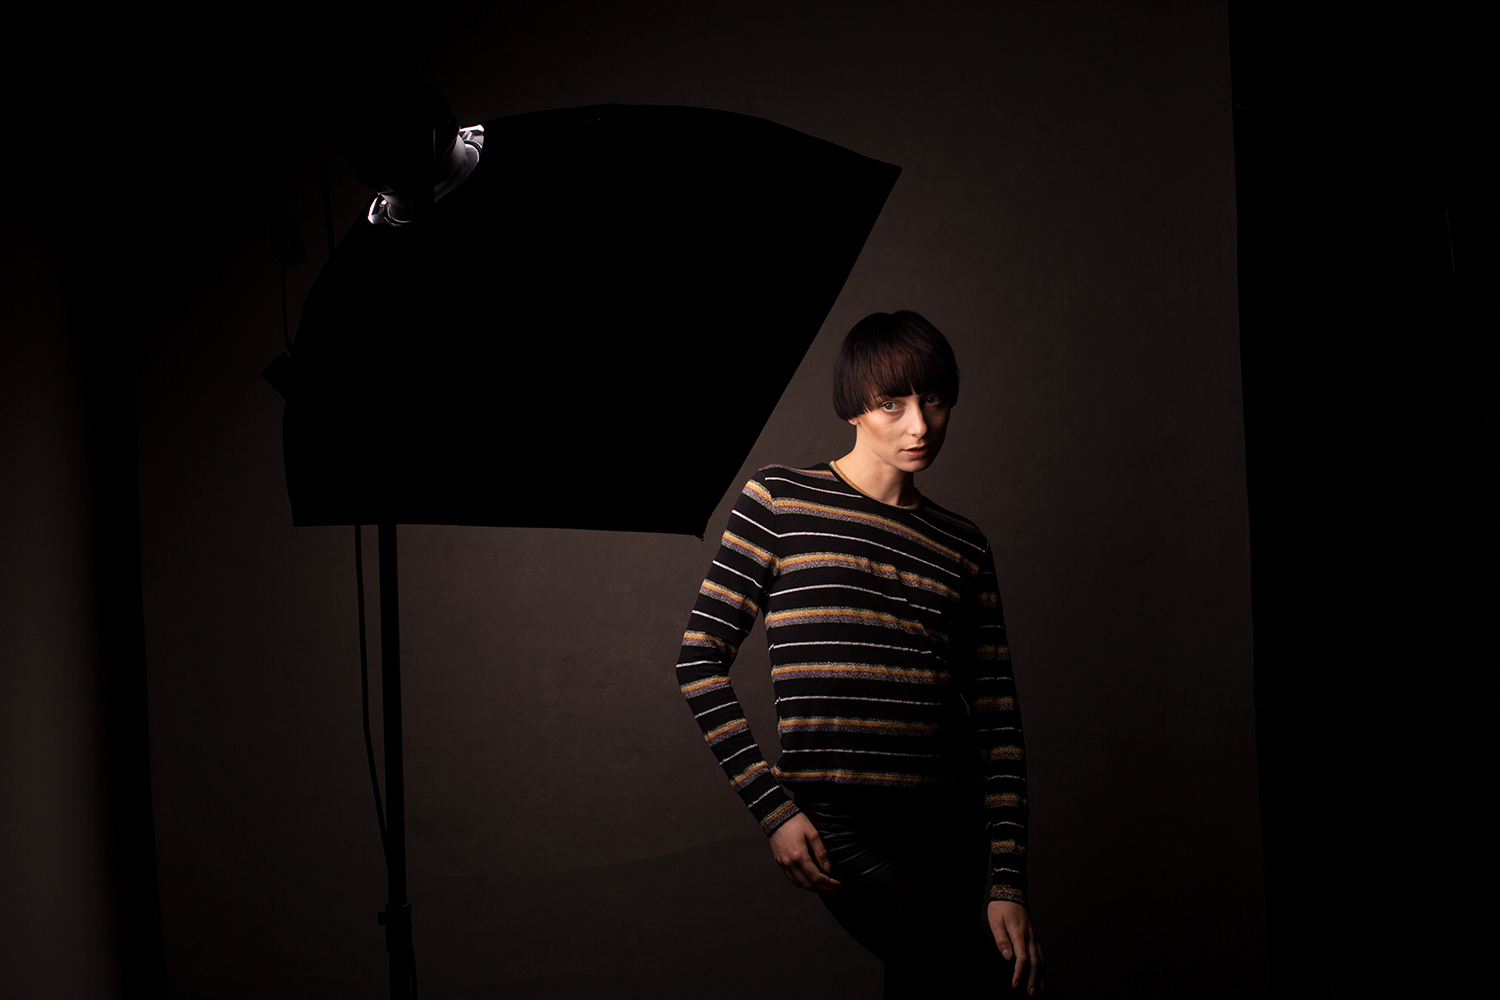 Image: Setting up for broad lighting couldn't be easier. Just have your subject turn away from...